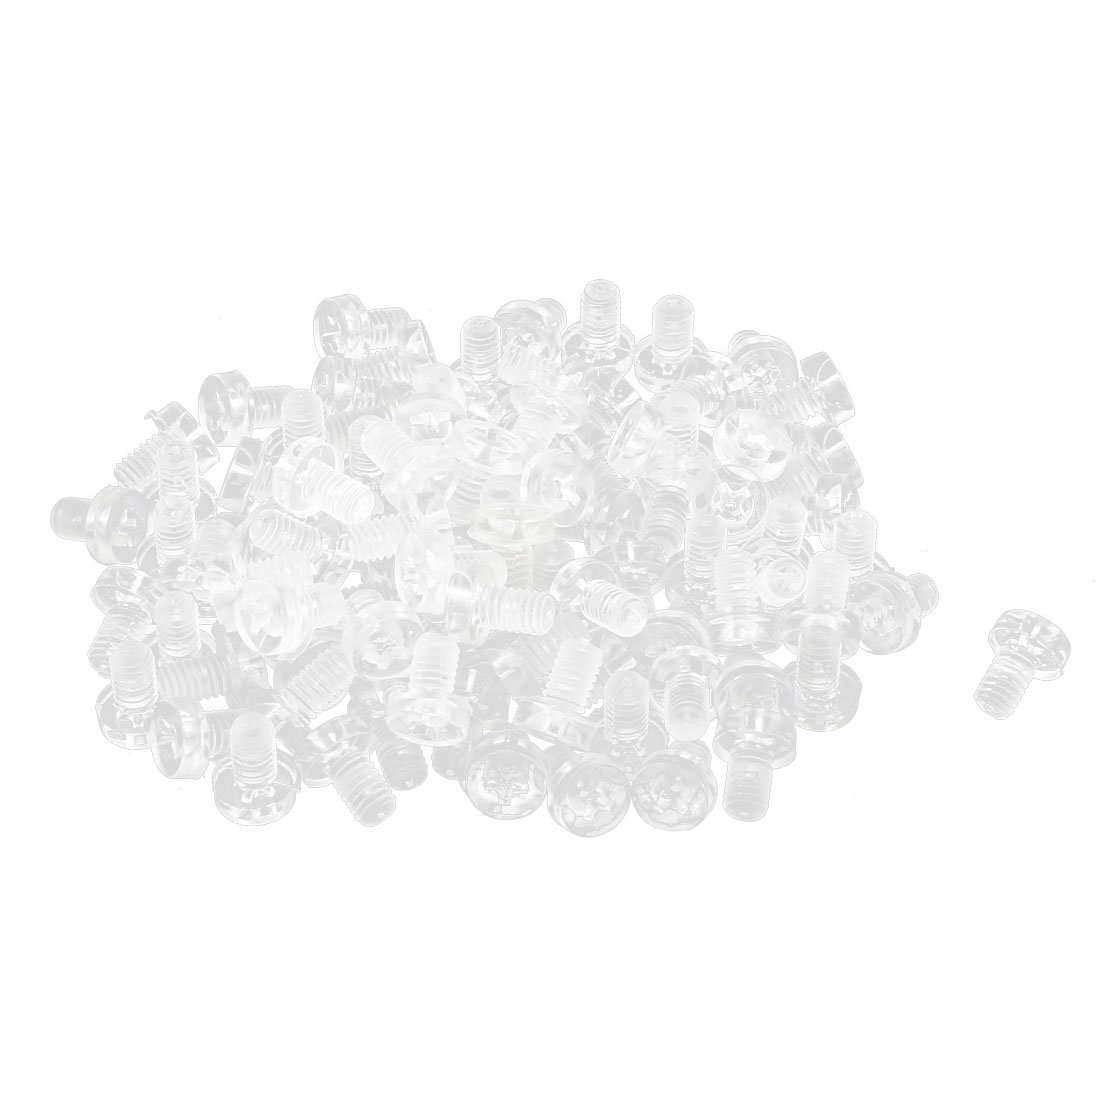 100pcs M4 x 6mm Plastic Phillips Cross Head Machine Screws Clear